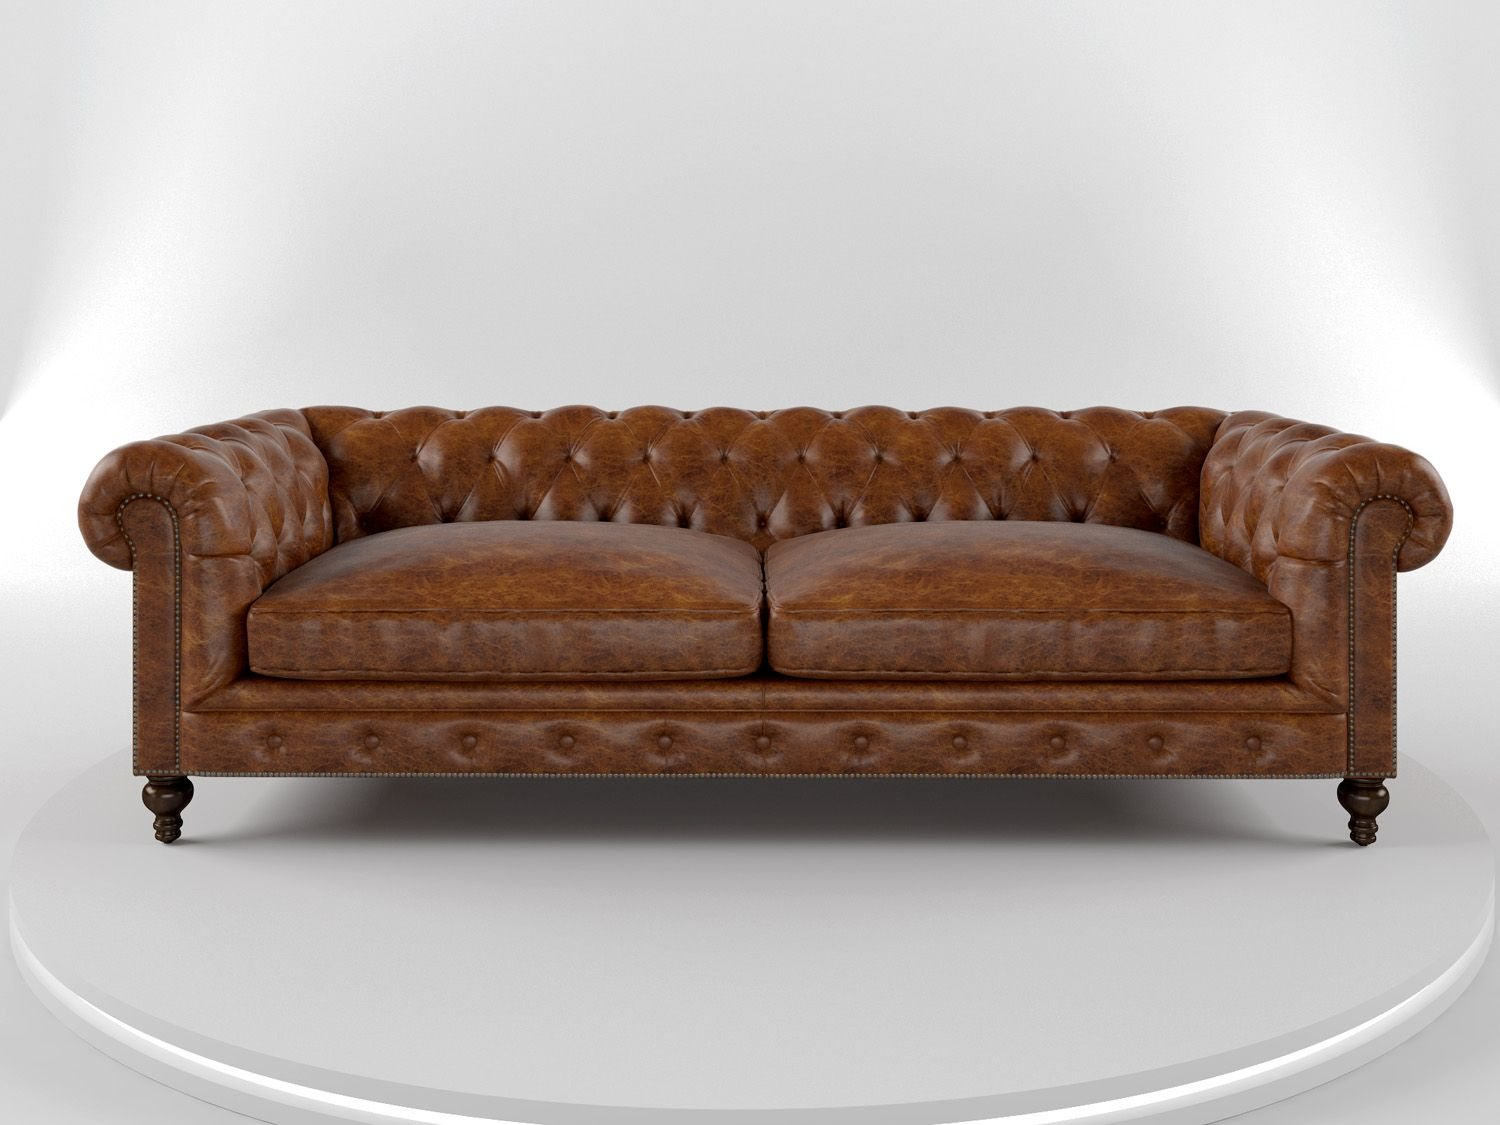 Ordinaire Classic Chesterfield